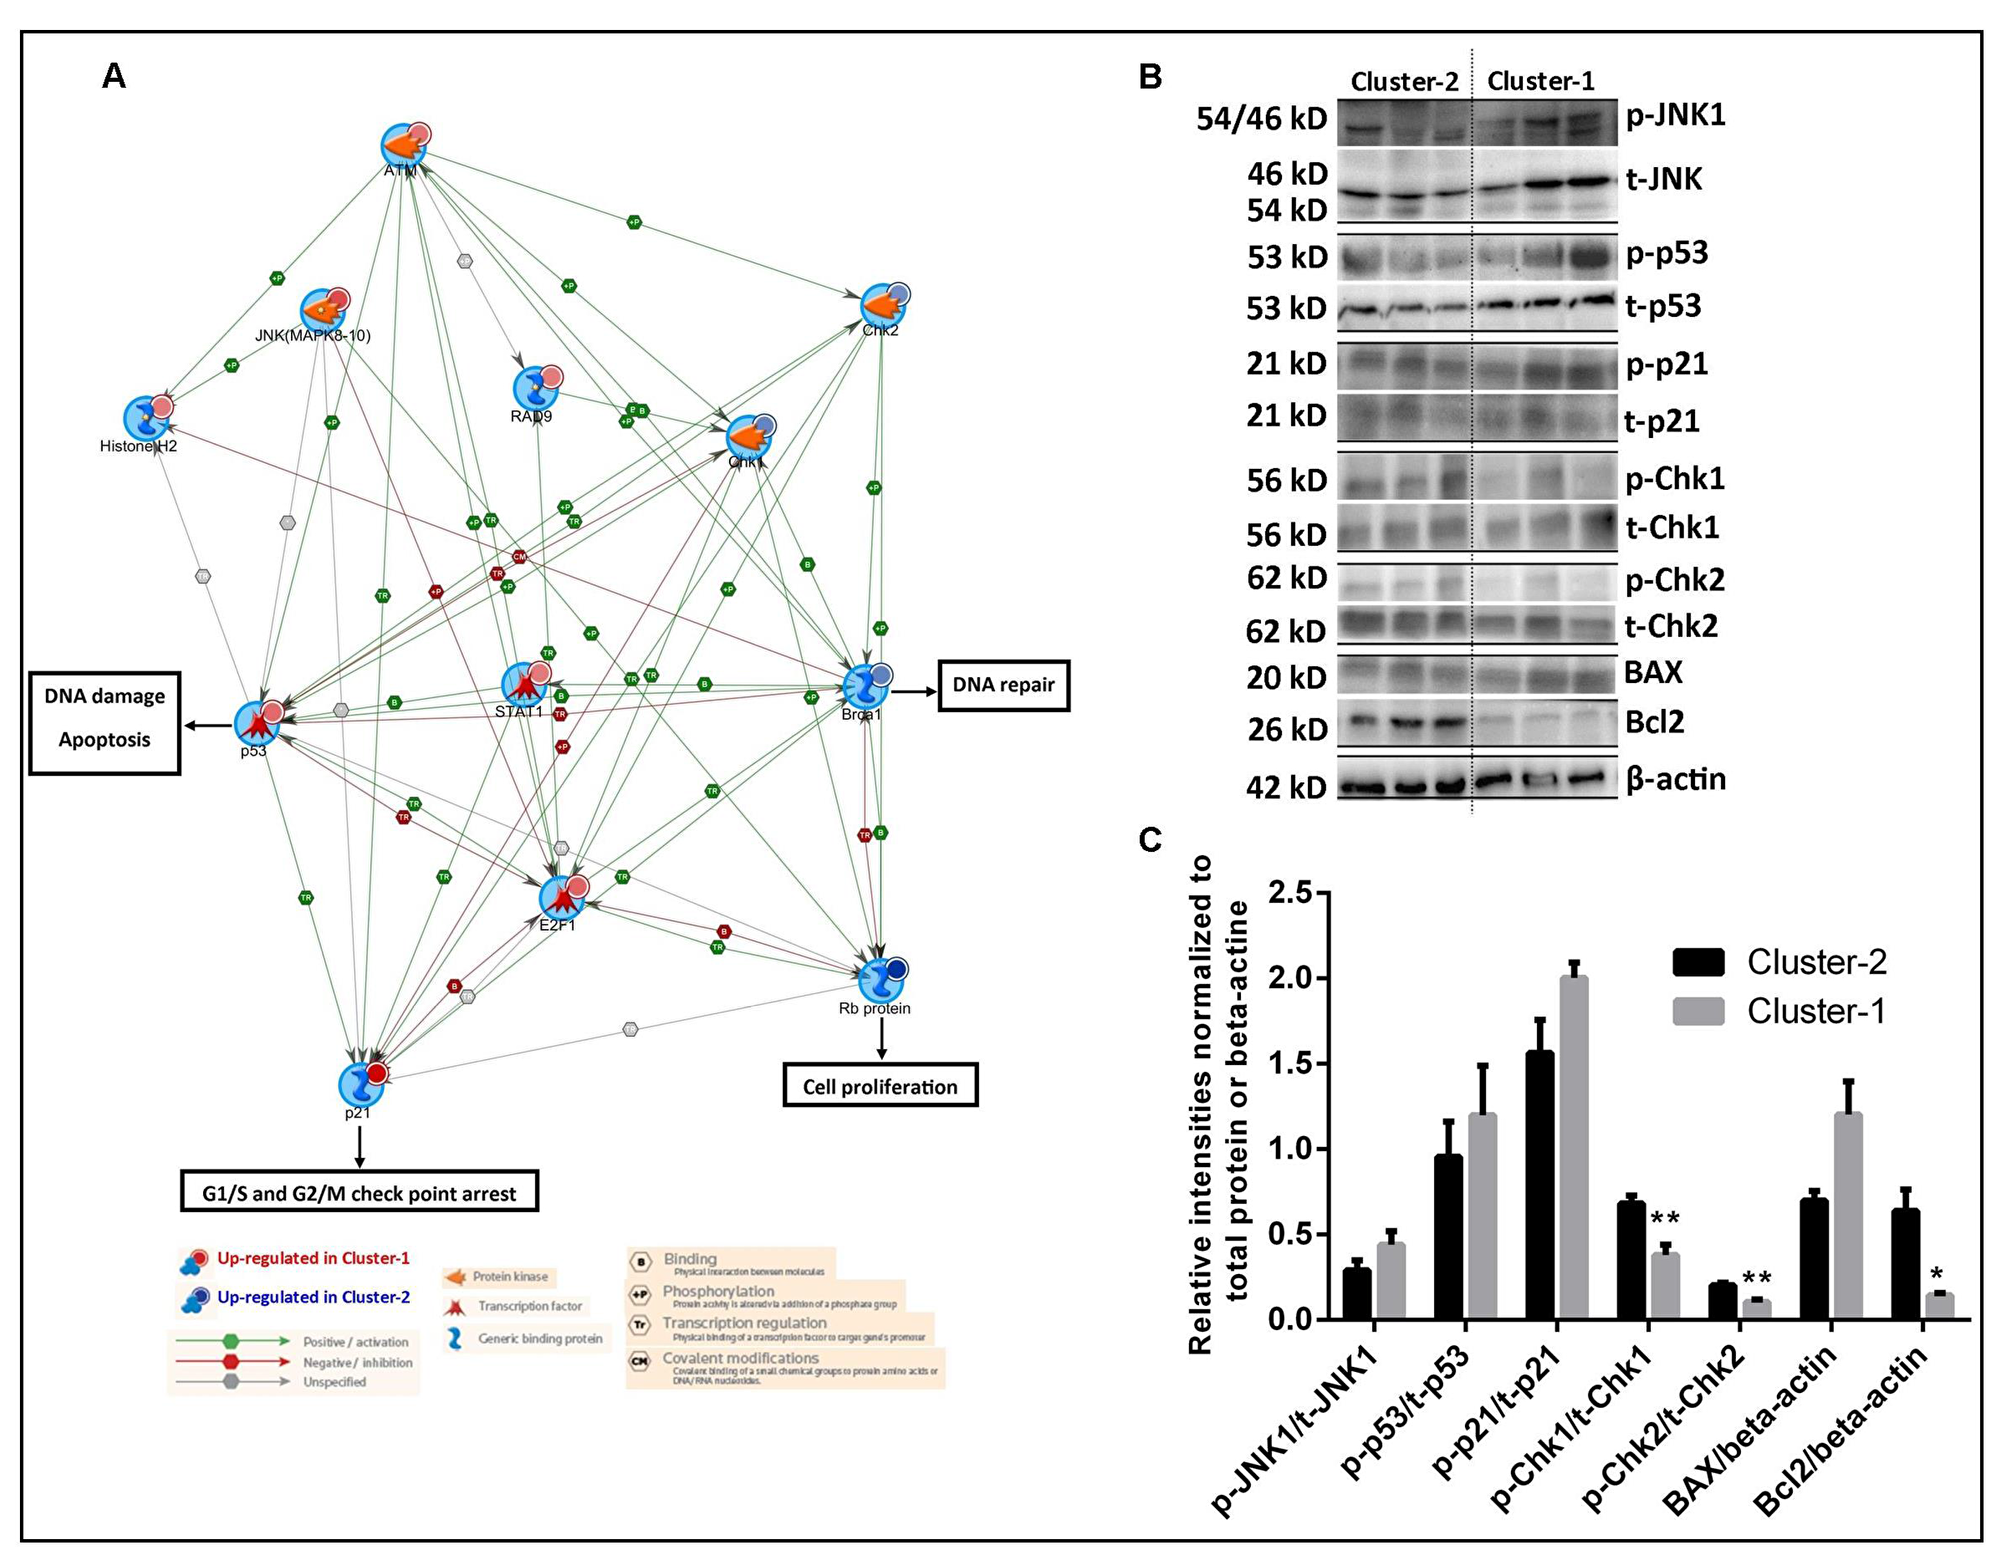 Delineation of signal transduction networks and determination of chemosensitivity of two AML clusters.